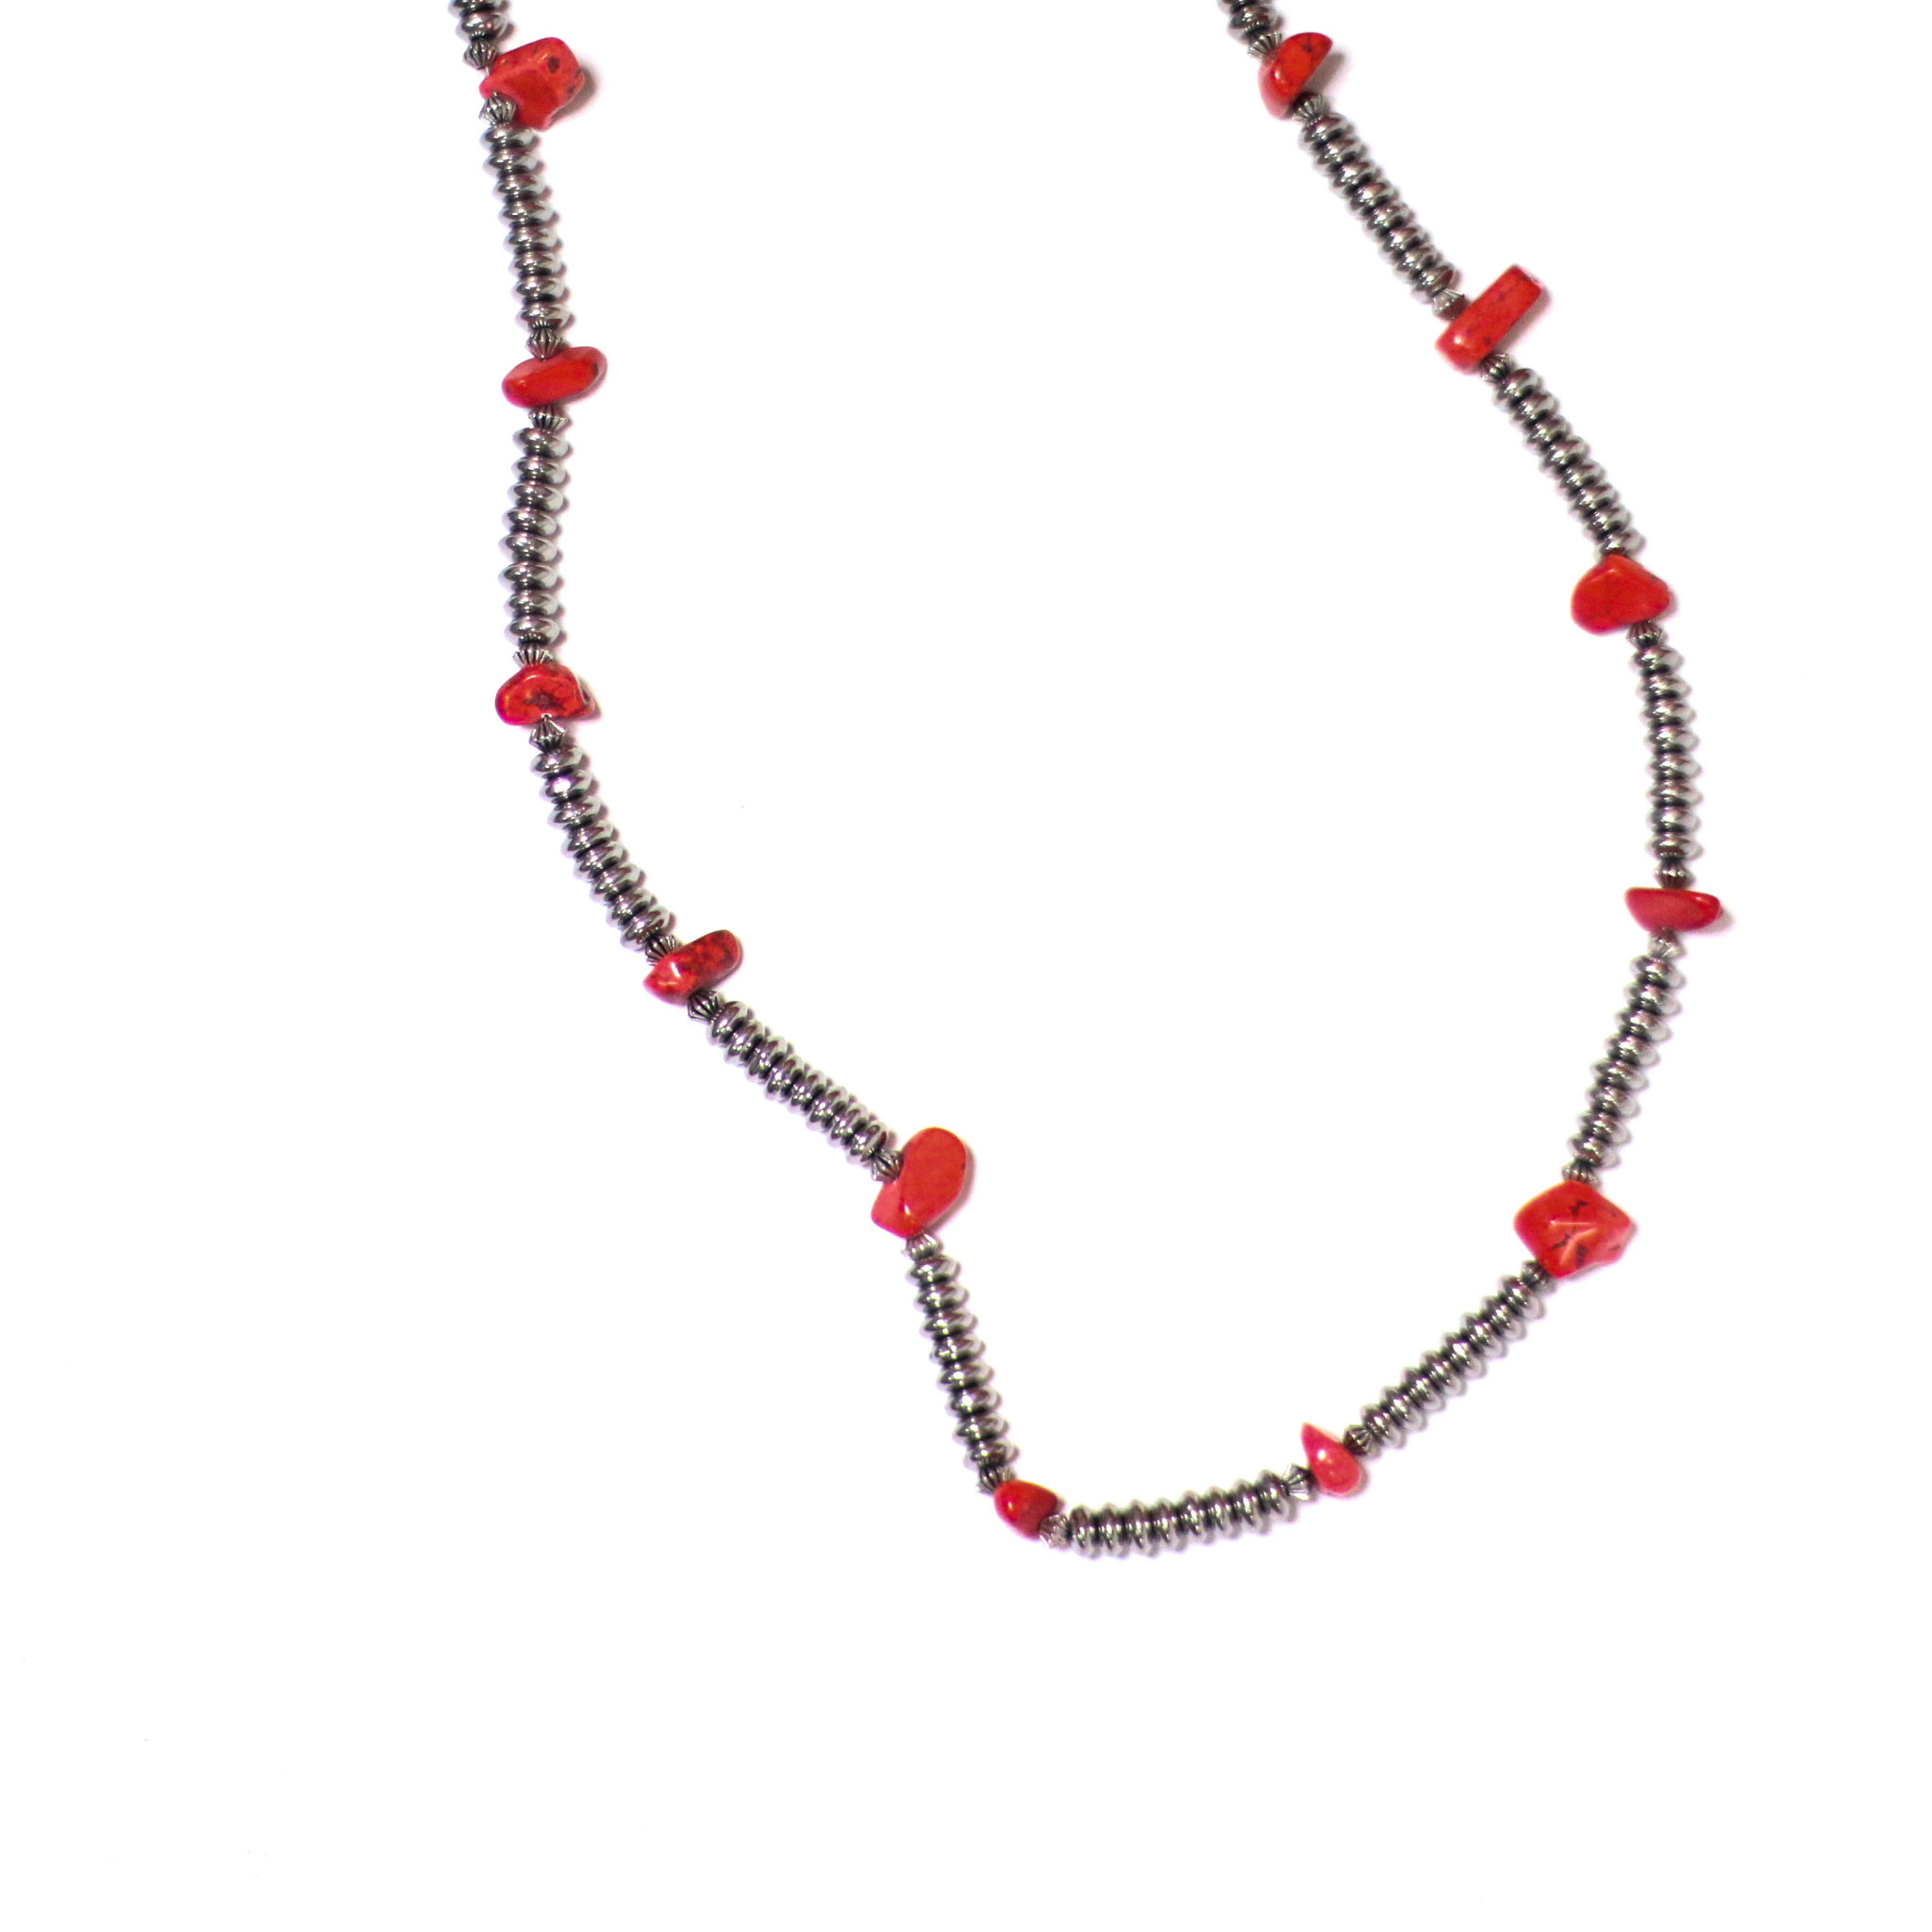 "Punchy's 32"" Silver Saucer Beaded Necklace with Red Accents"